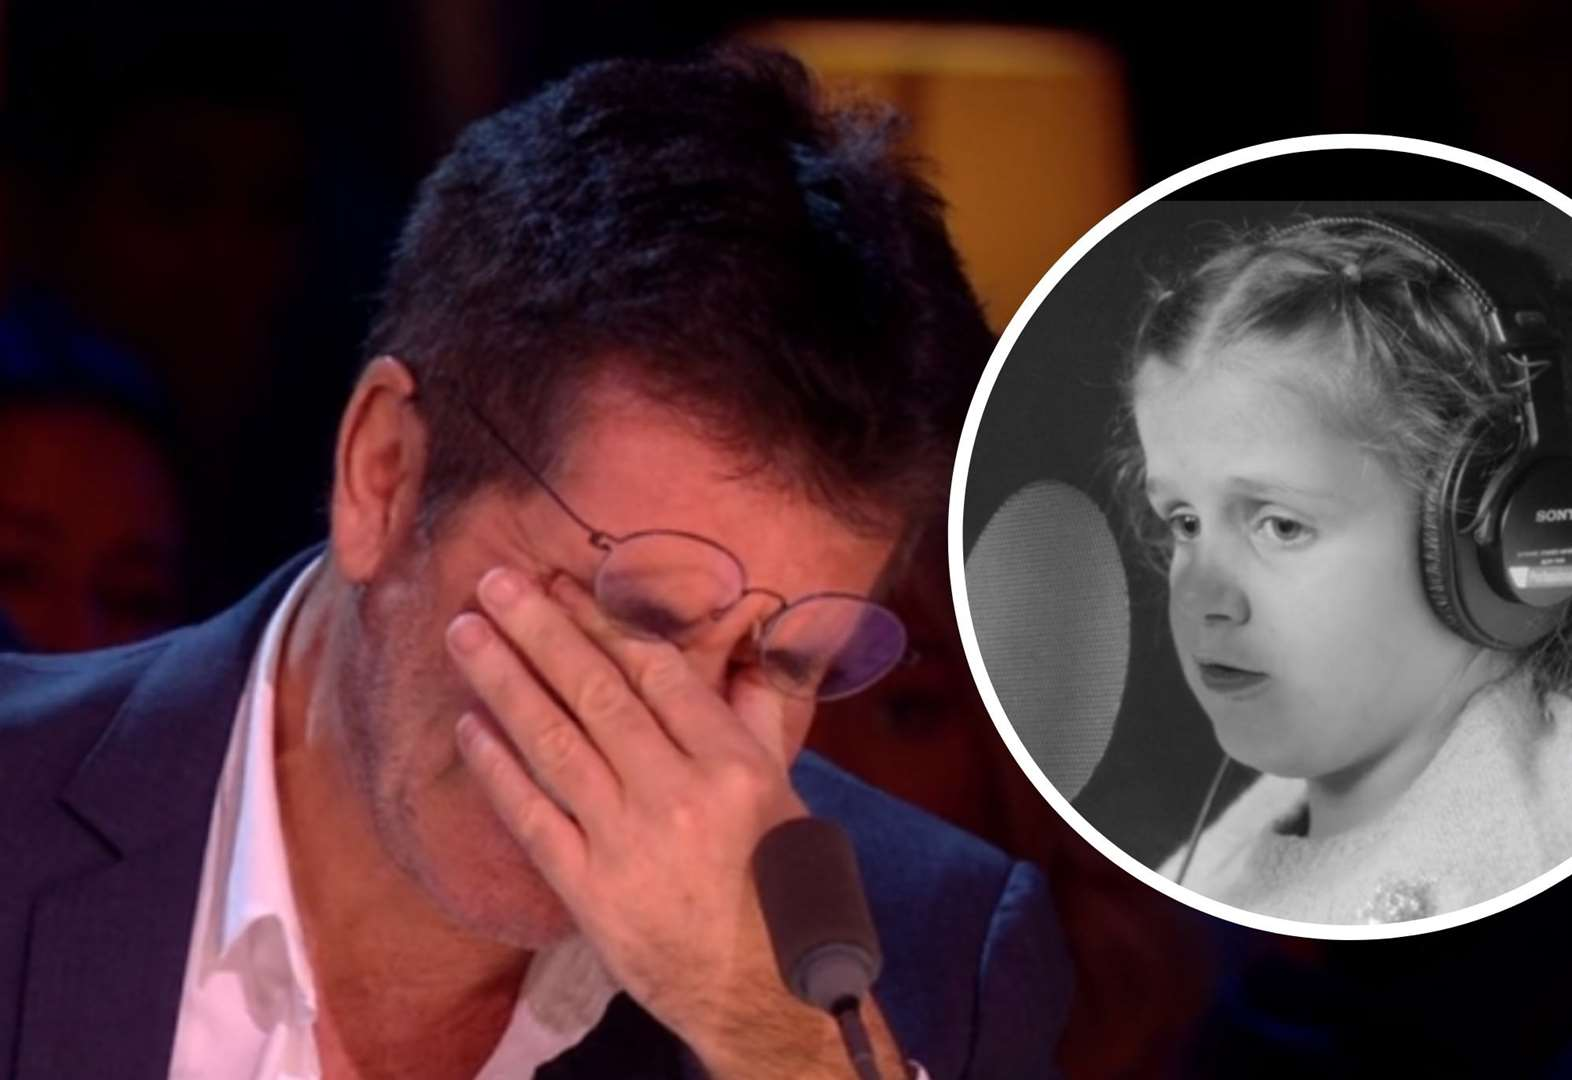 The little girl who brought Simon Cowell to tears